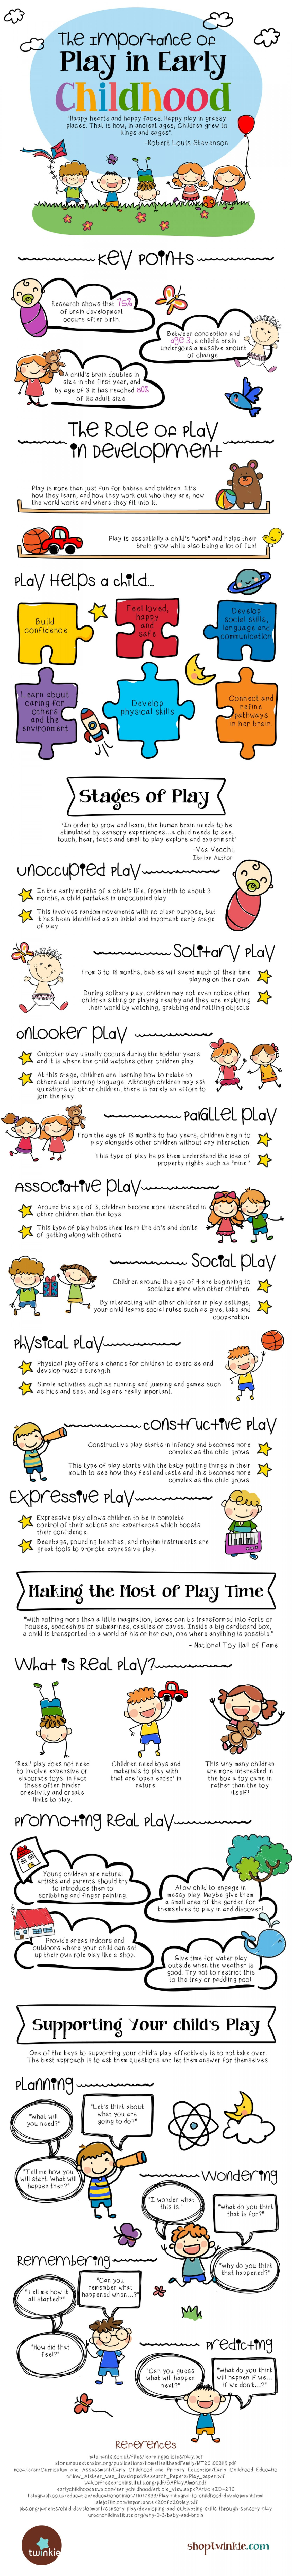 The importance of play in early childhood also best pro ed images on pinterest education rh